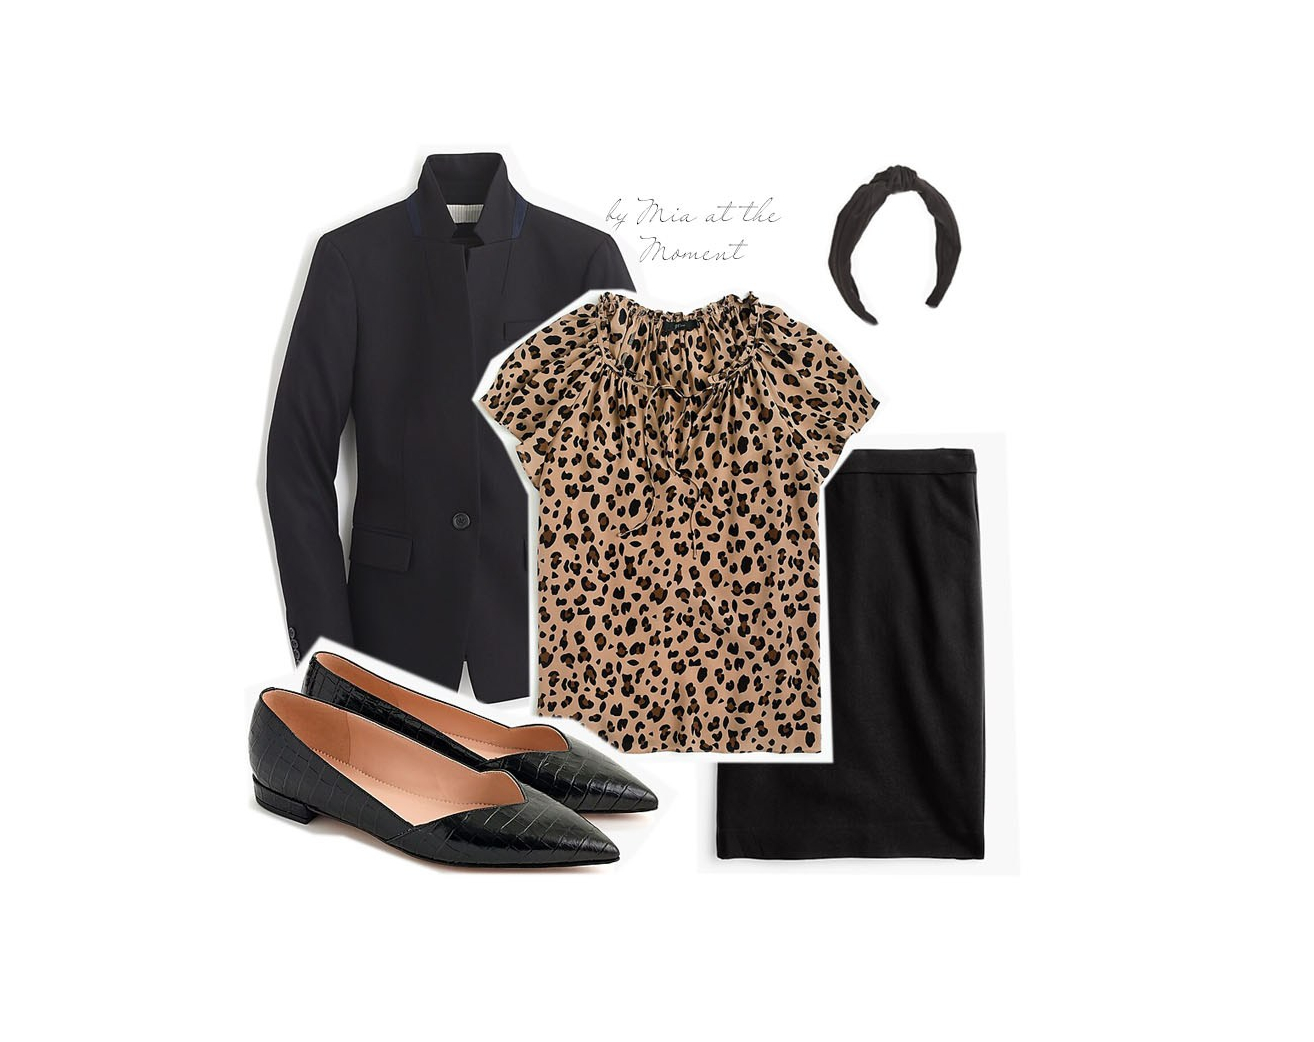 Blazer, leopard shirt and skirt ensemble.